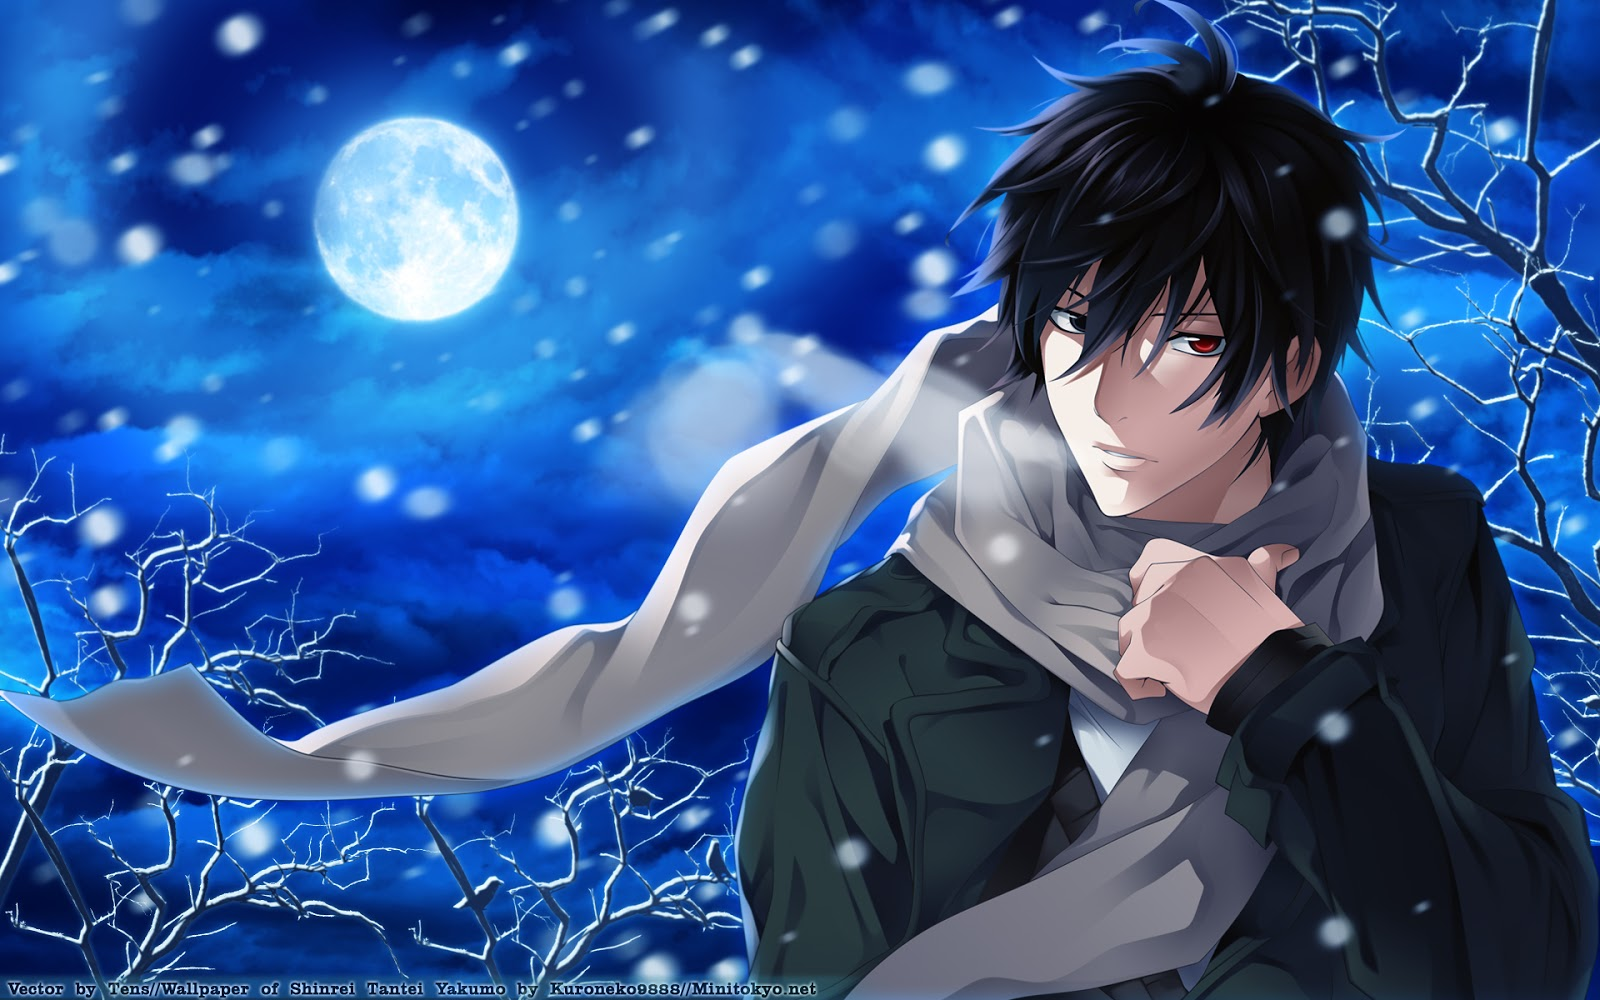 Anime cool guy wallpaper wallpapersafari - Anime guy wallpaper ...